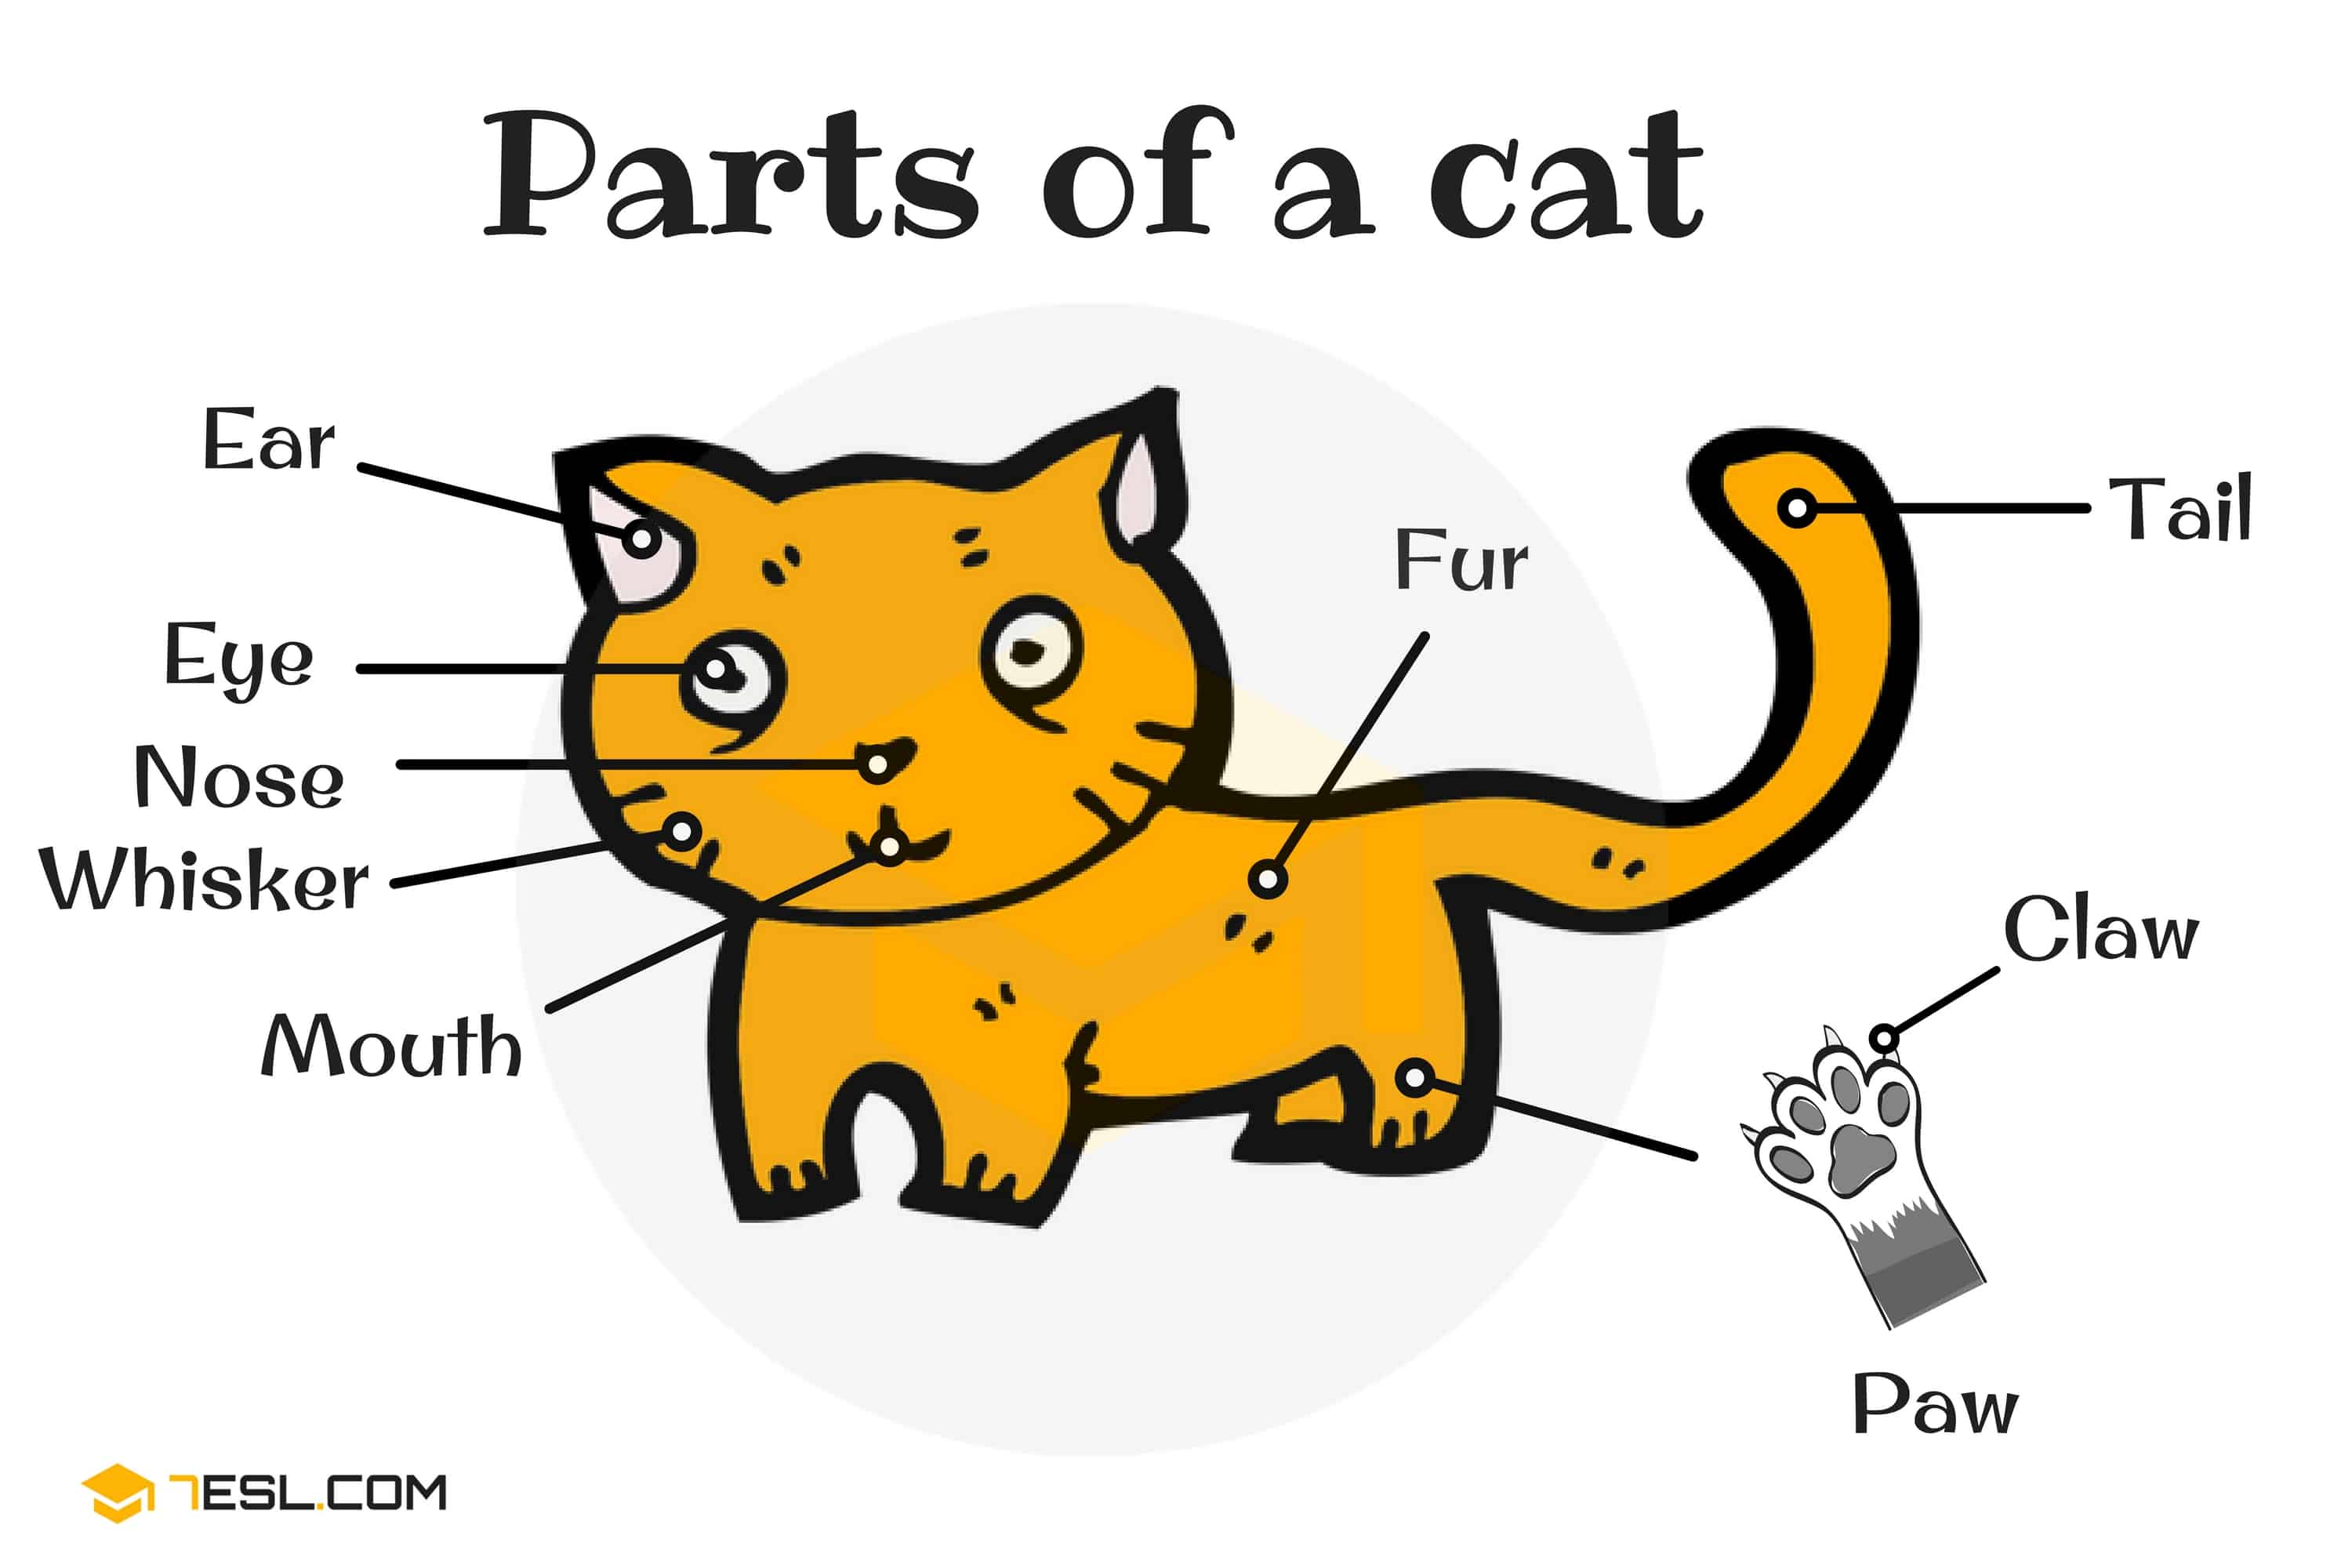 Animal Body Parts Vocabulary in English (with Pictures) 12